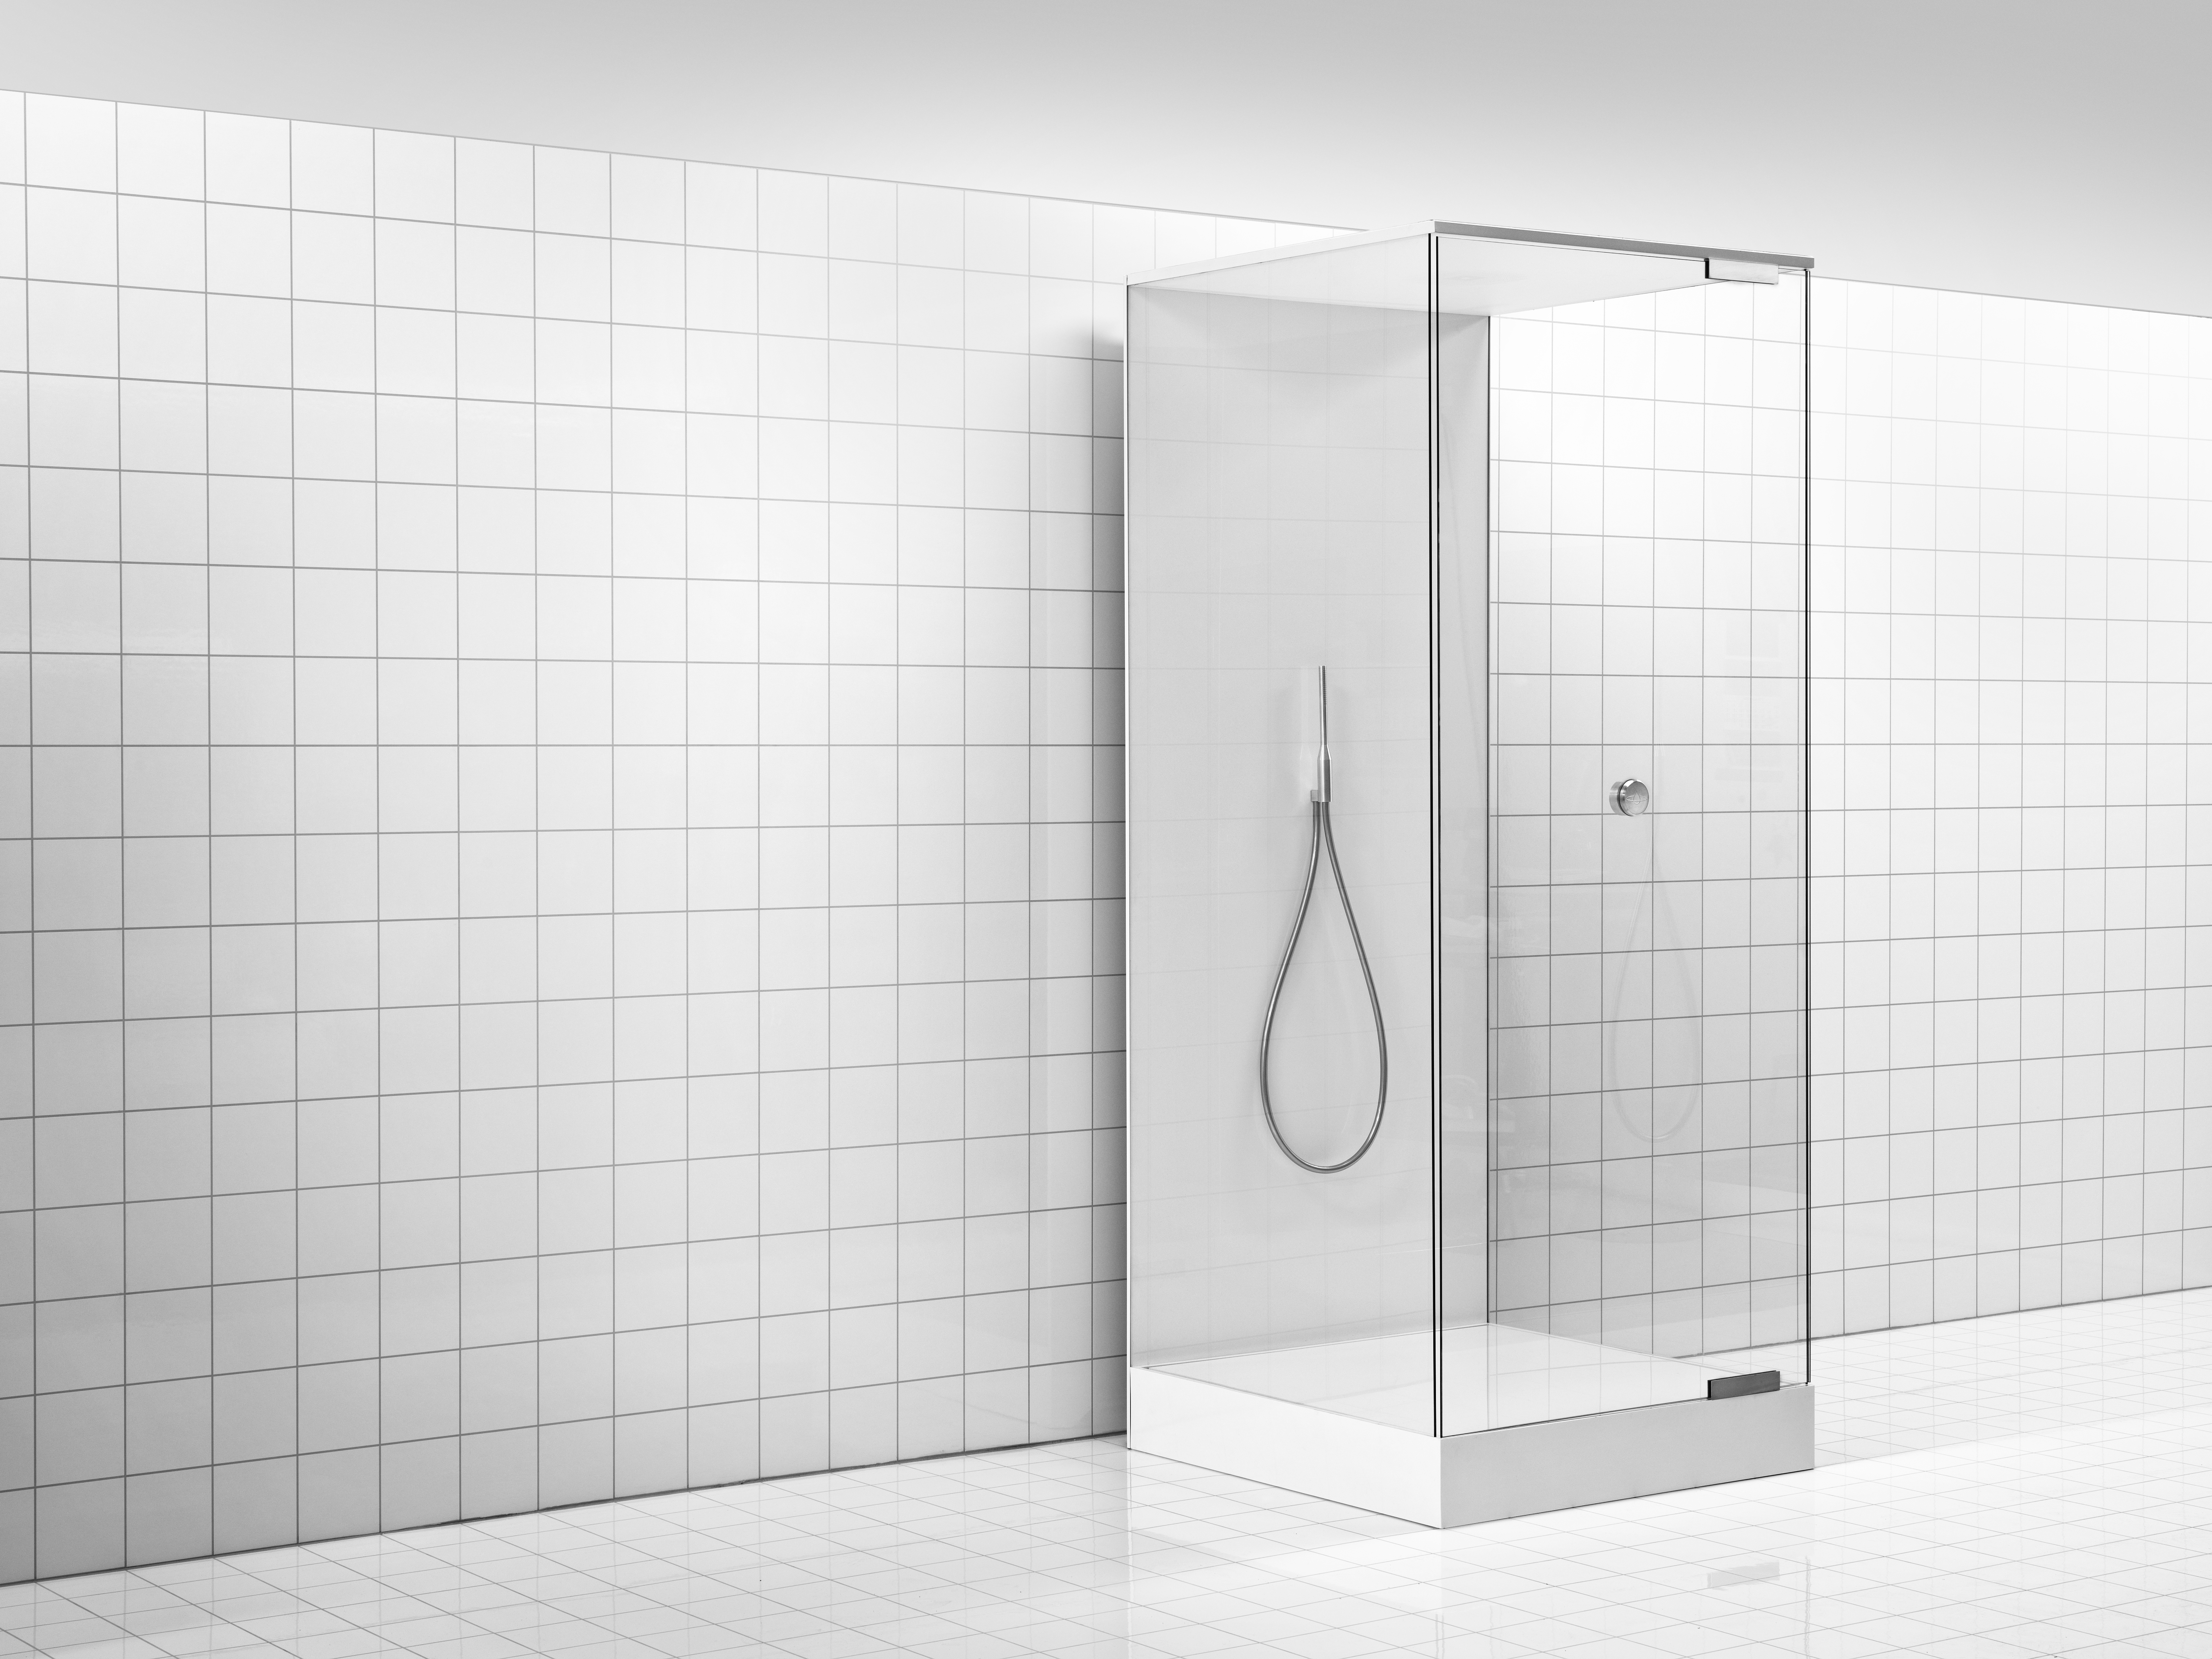 shower-of-the-future.jpg